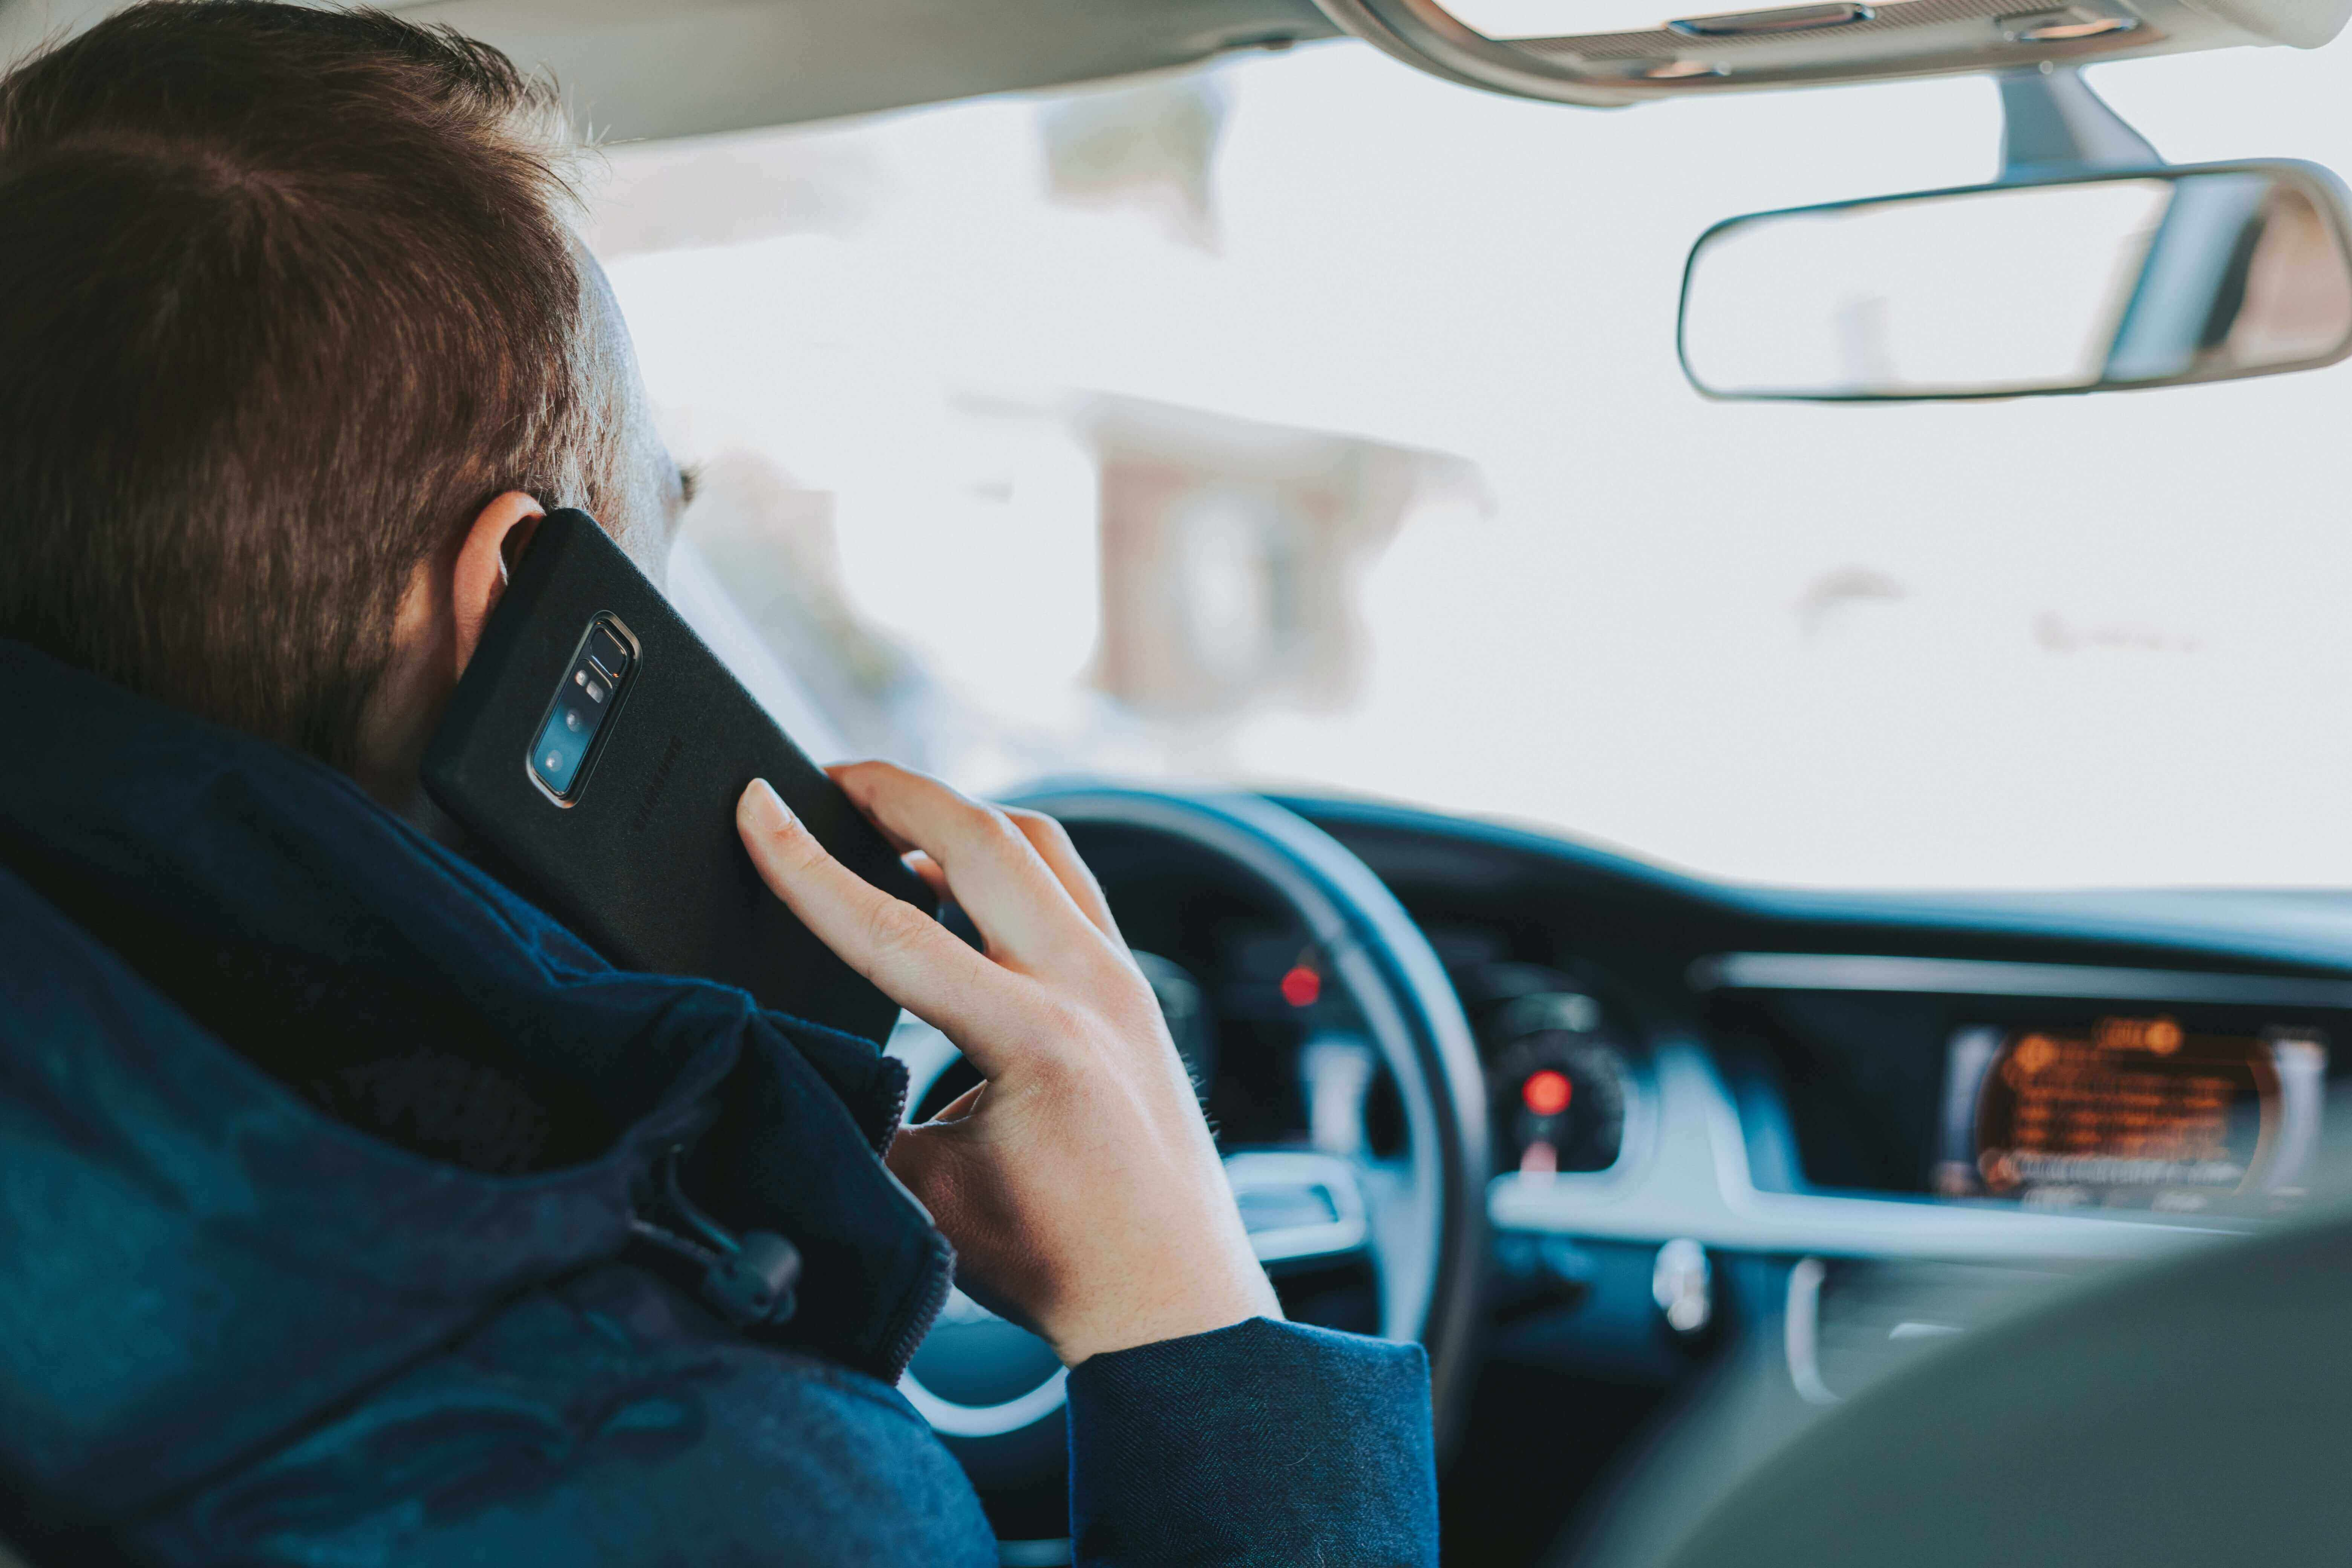 Stricter laws on mobile phone use behind the wheel coming in 2021